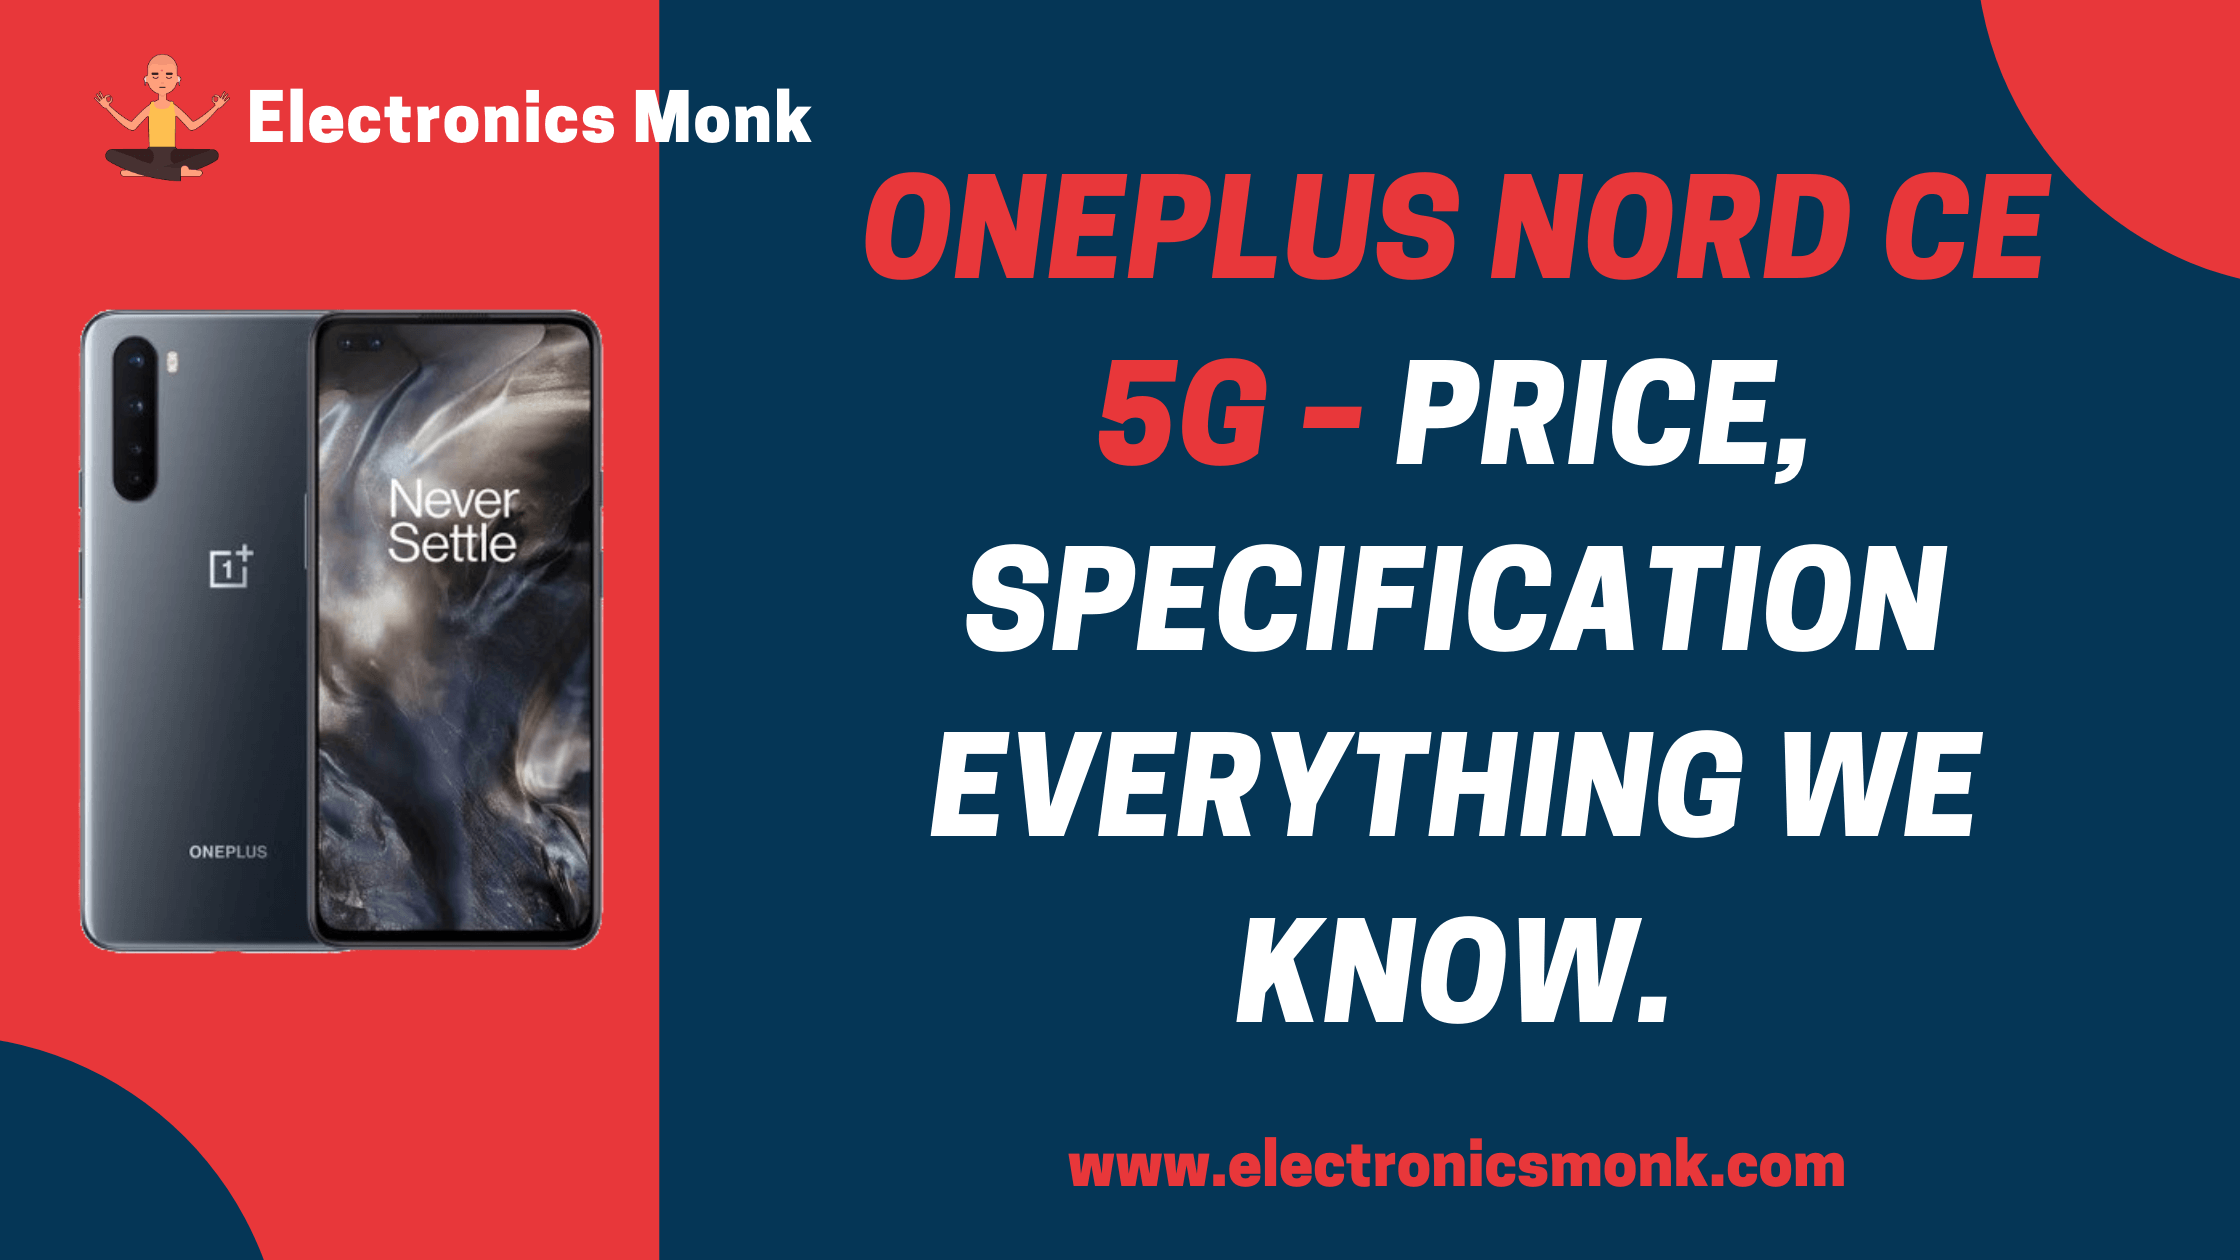 Oneplus Nord CE 5G - Price, Specification everything we know